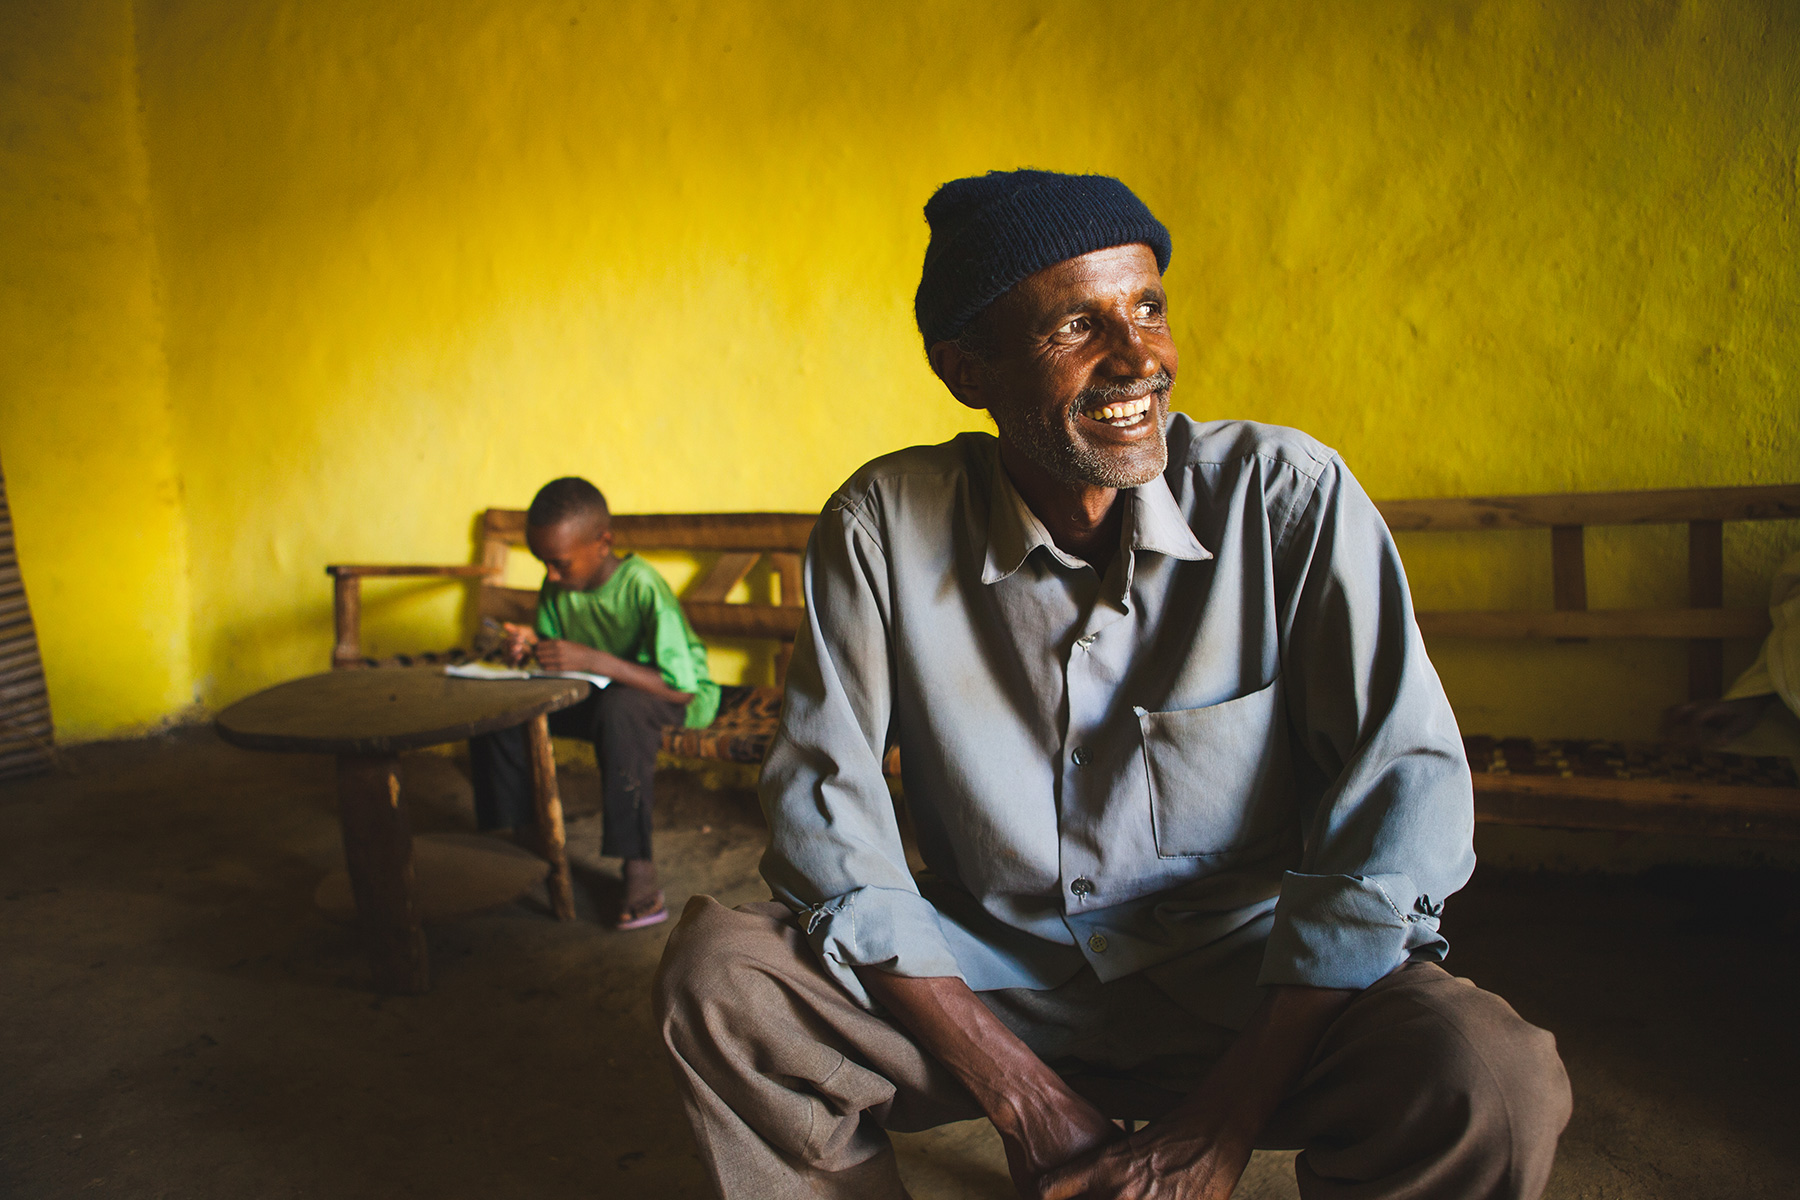 An Ethiopian man in his home with his son reading in the background